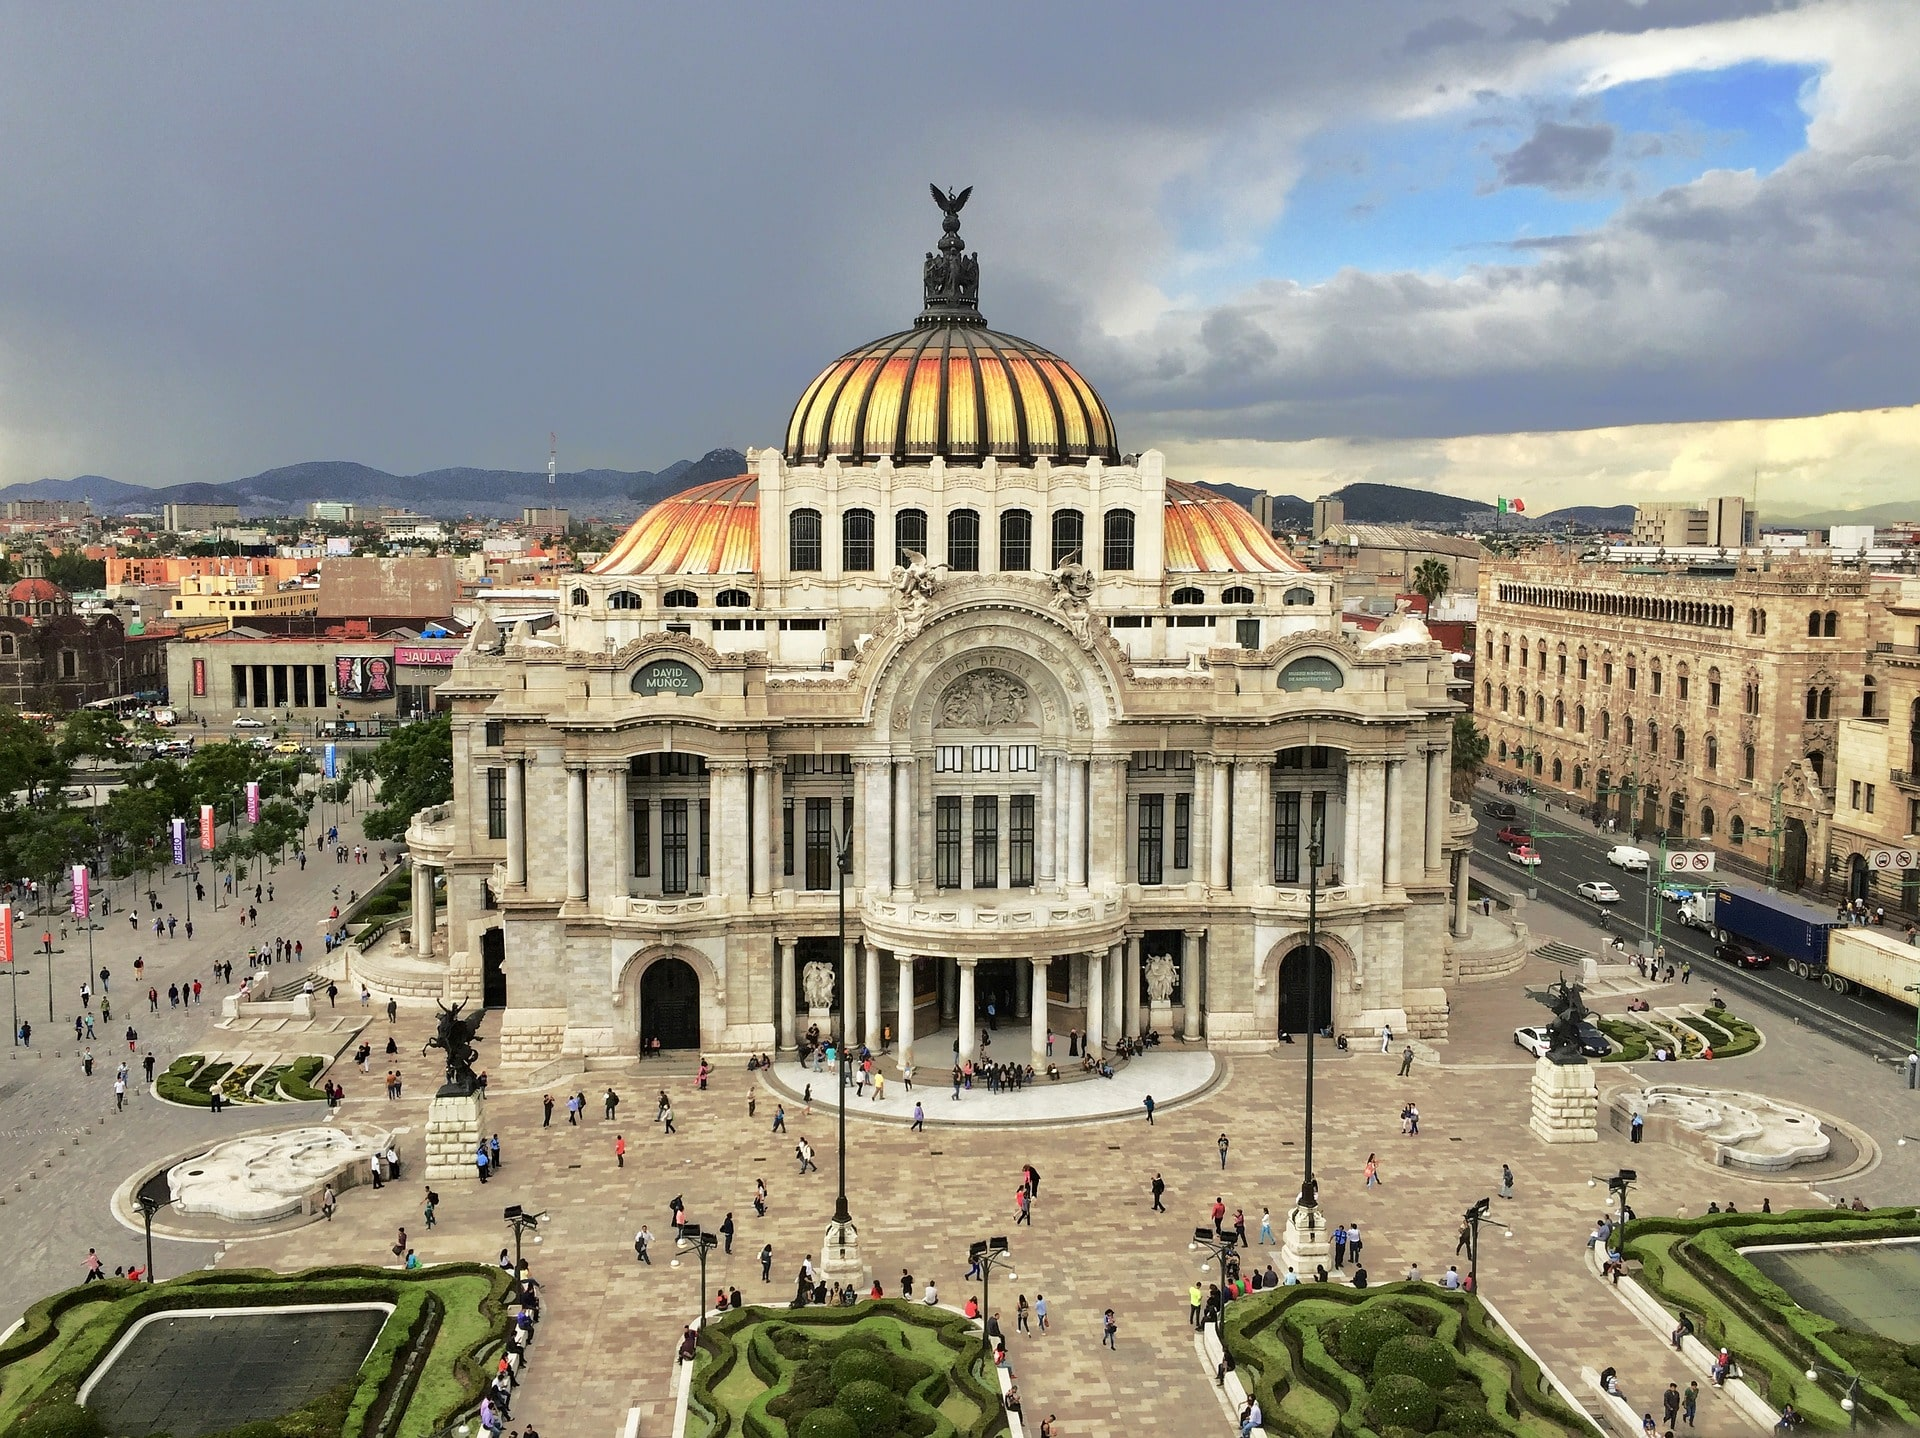 Centro Historico is one of the best neighborhoods in Mexico City